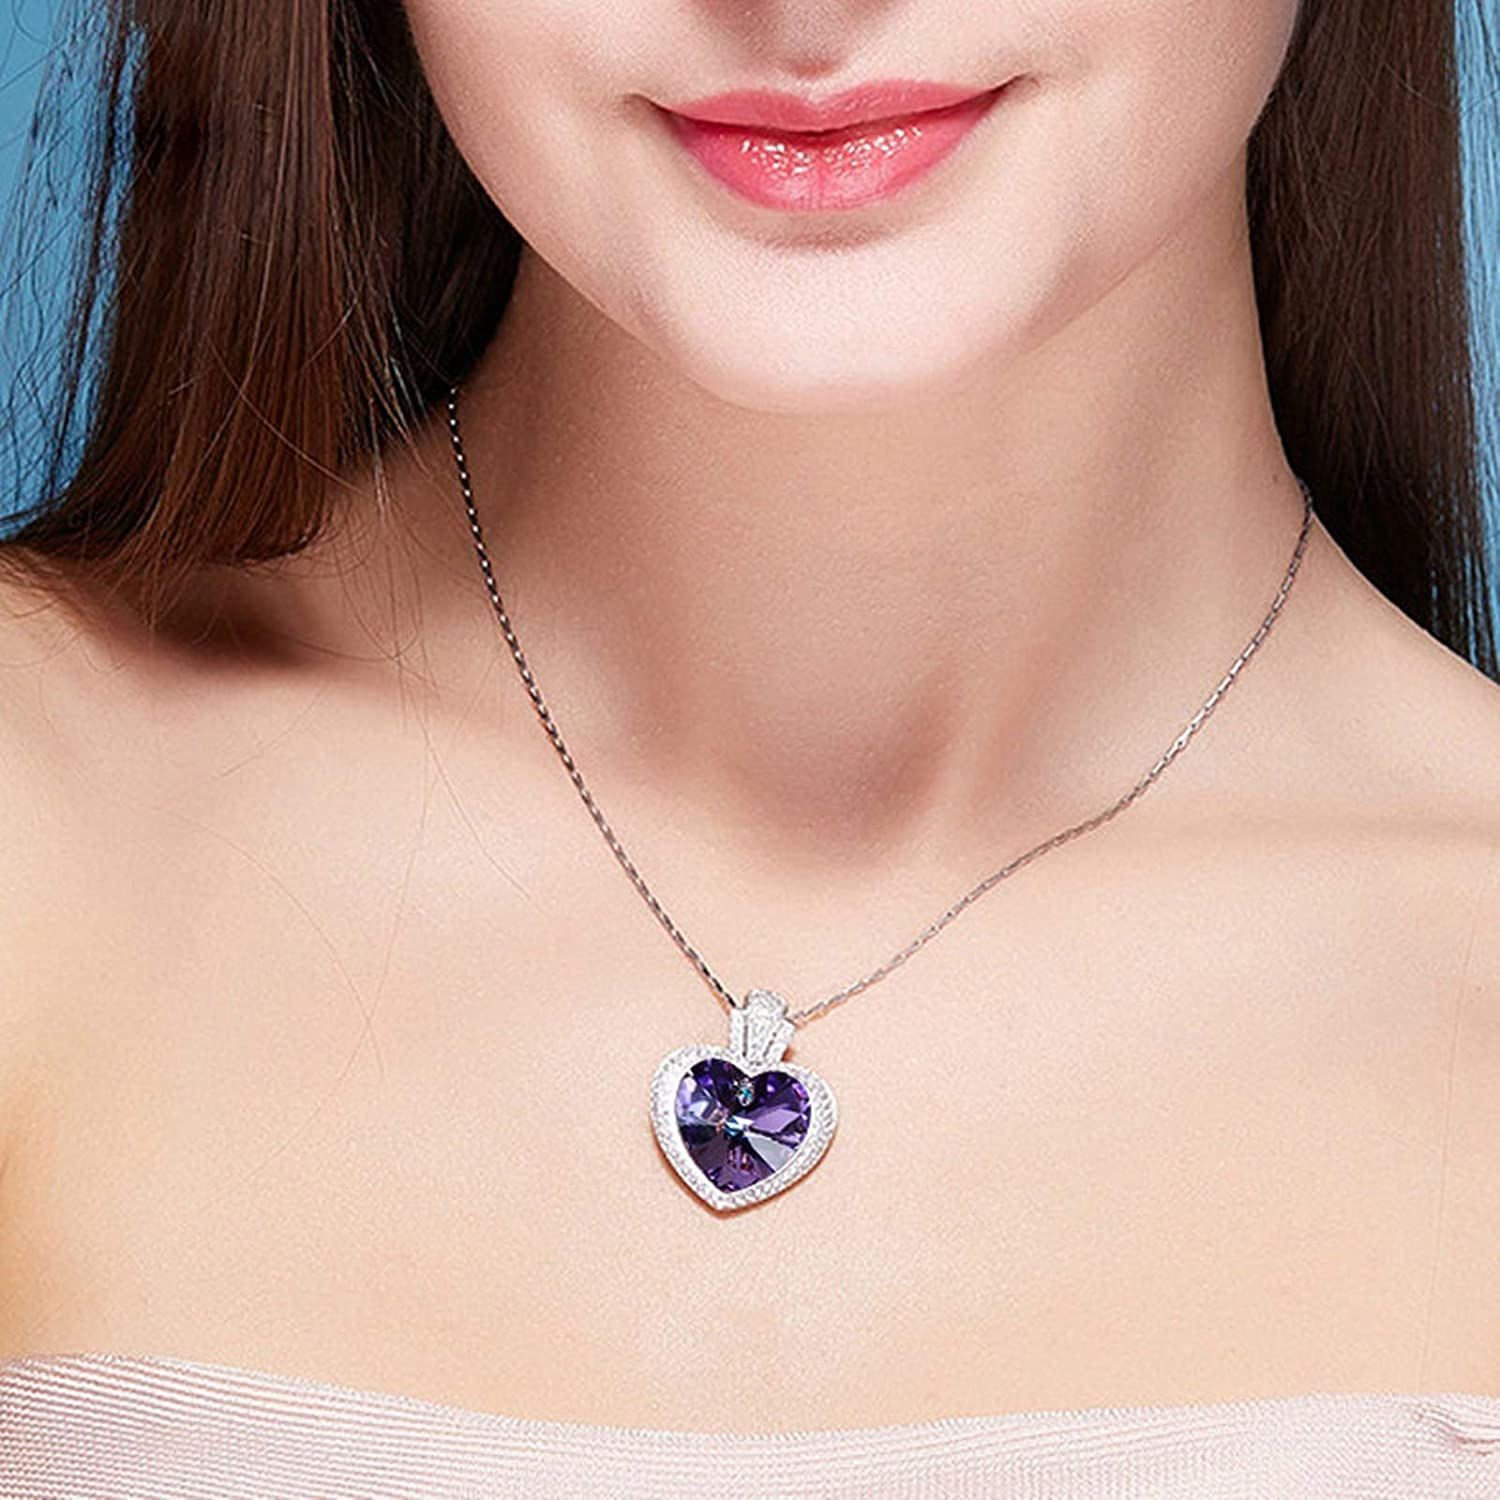 ANAZOZ S925 Sterling Silver Necklace Heart Crystal Purple Pendants Color Changing